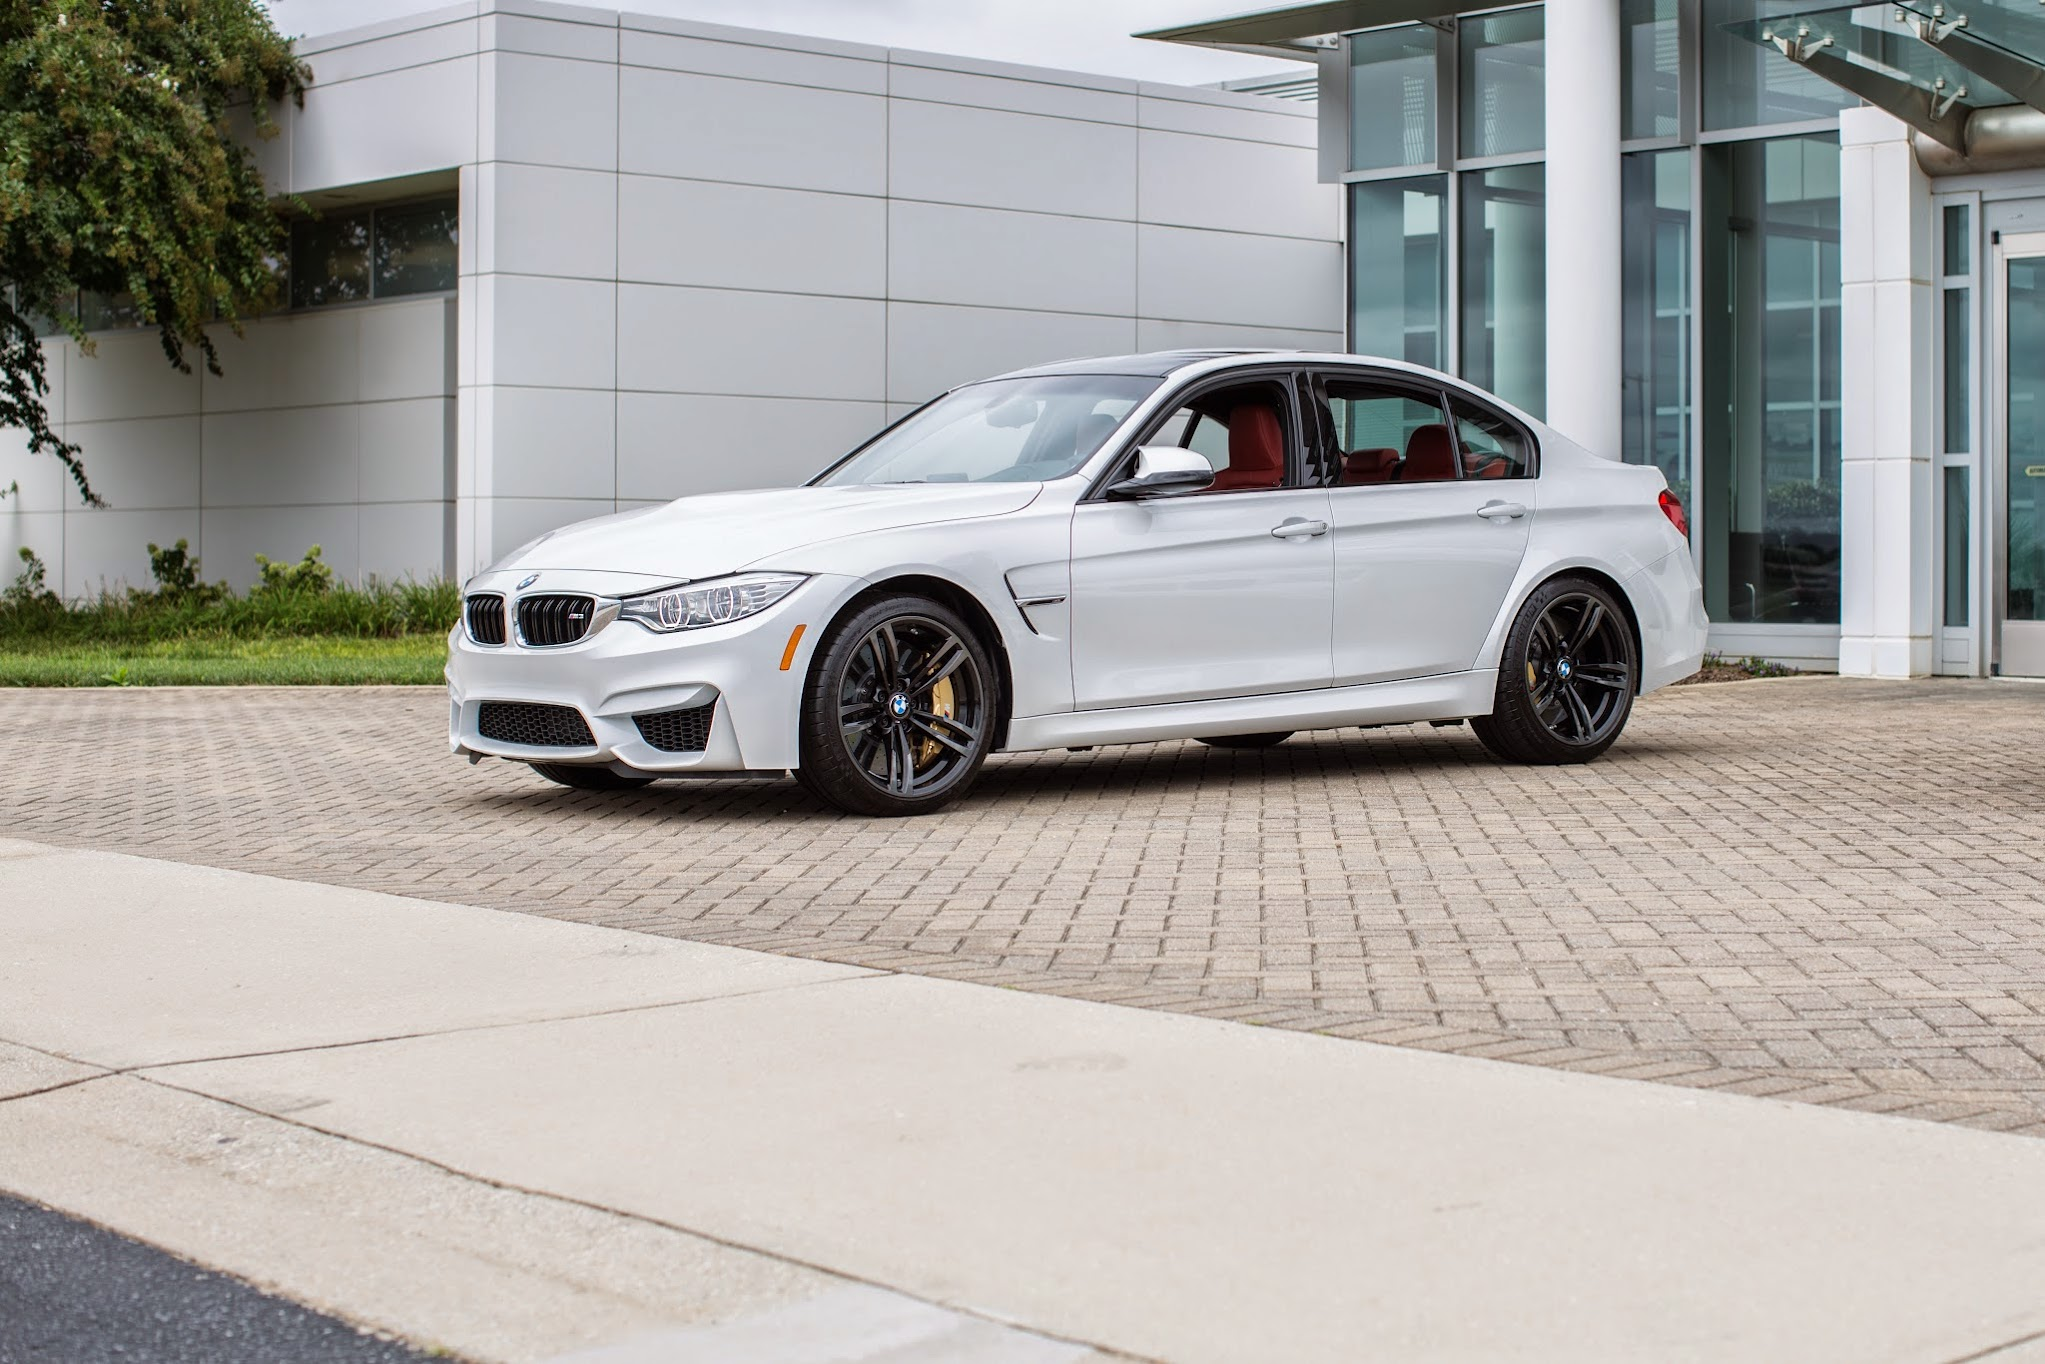 1 500 Mile Review Of The F80 M3 Obsessed Garage Blog